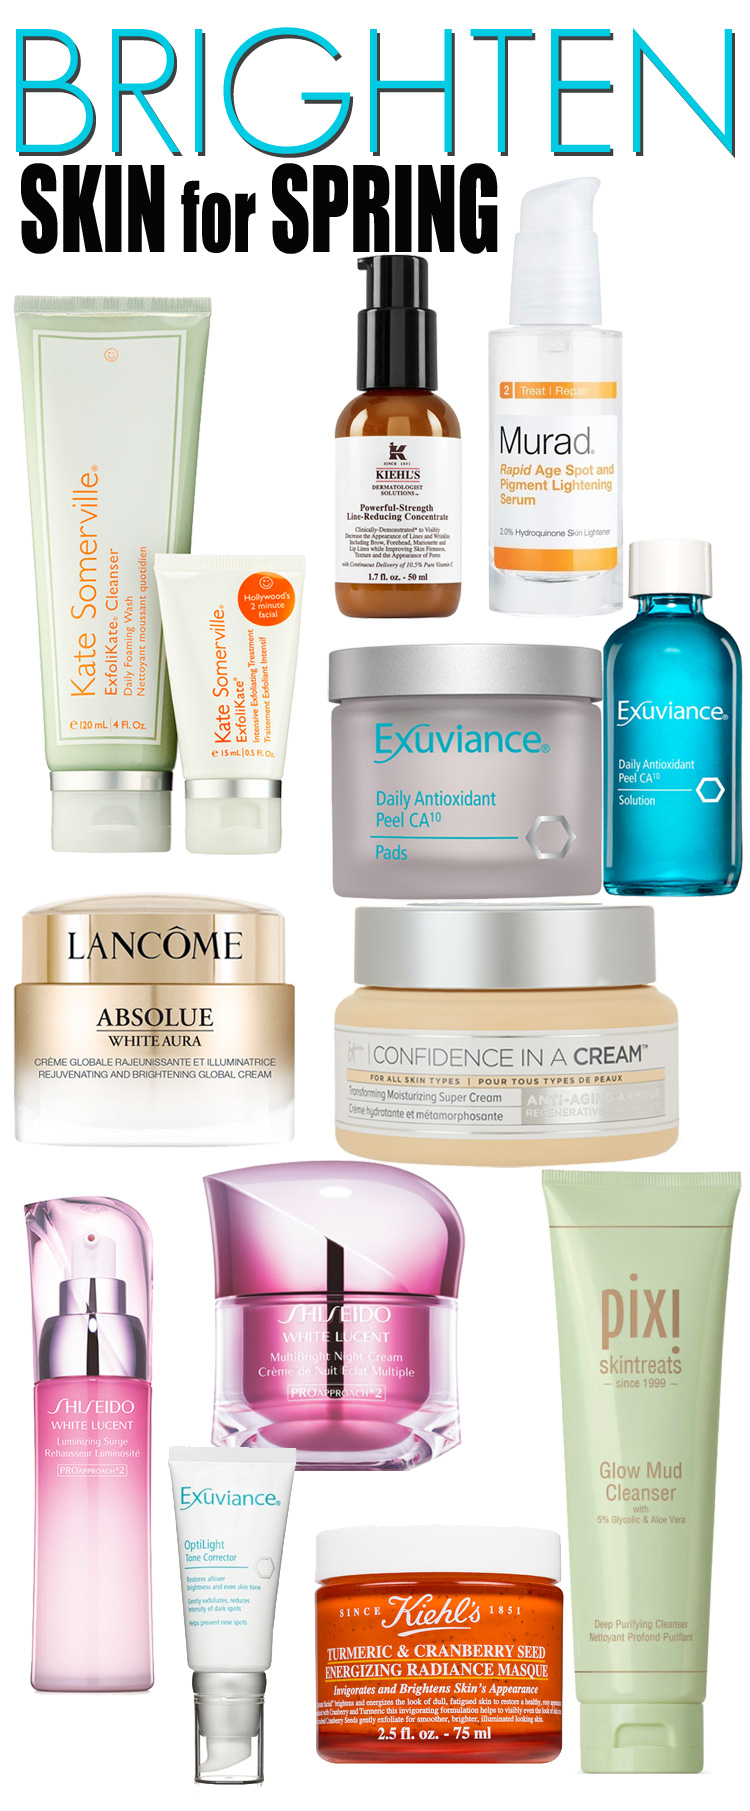 10 Ways to Brighten Skin for Spring